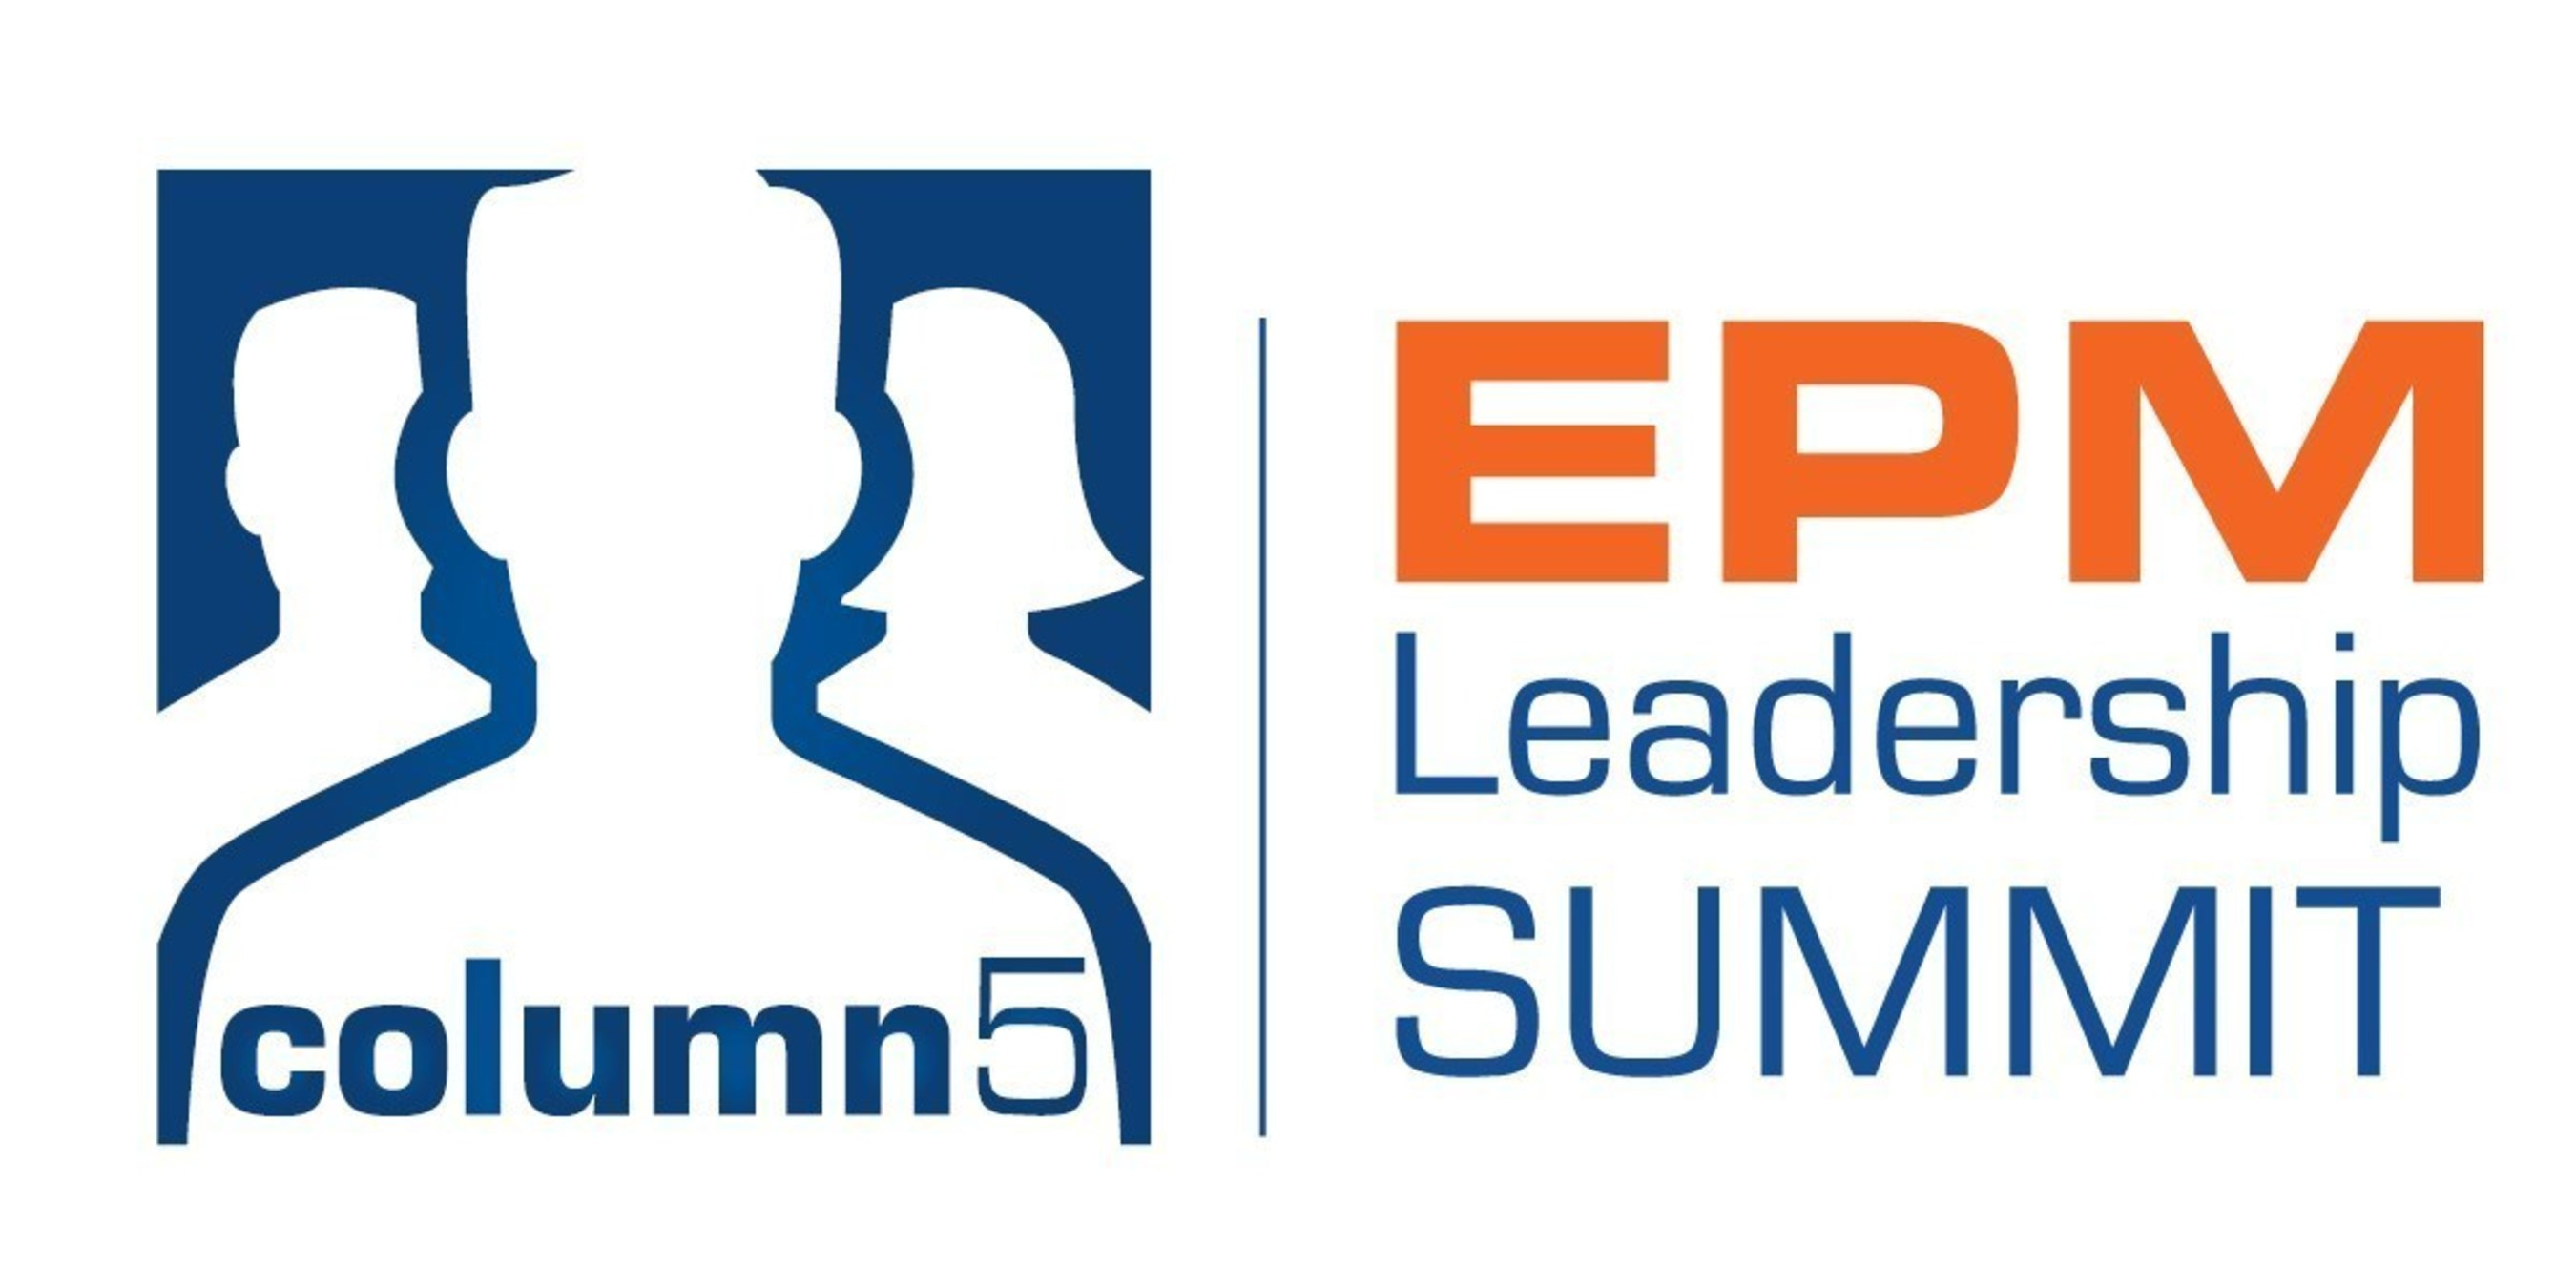 Column5 Launches EPM Leadership Summit Agenda with New Website